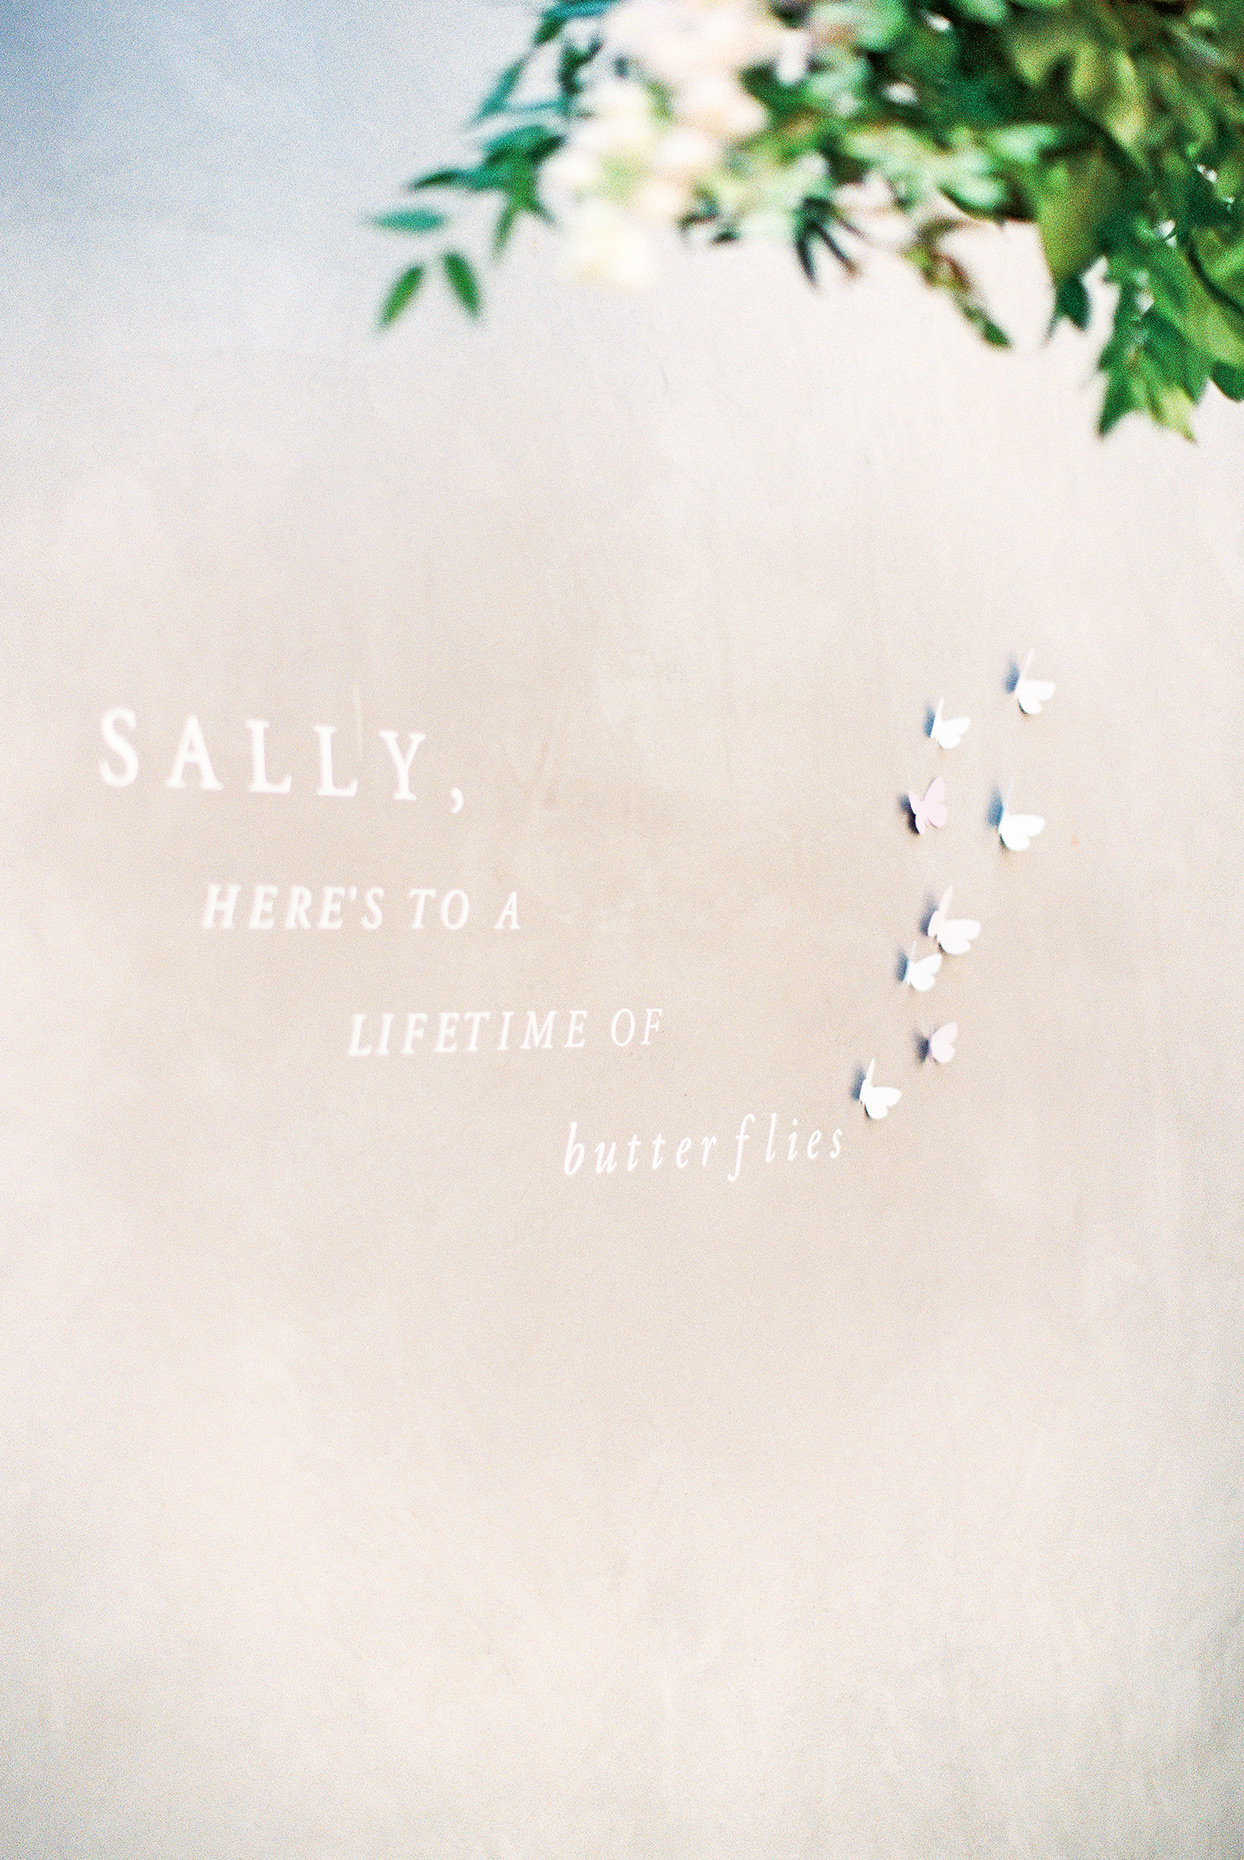 sally bridal shower photo backdrop with quote and butterfly decals